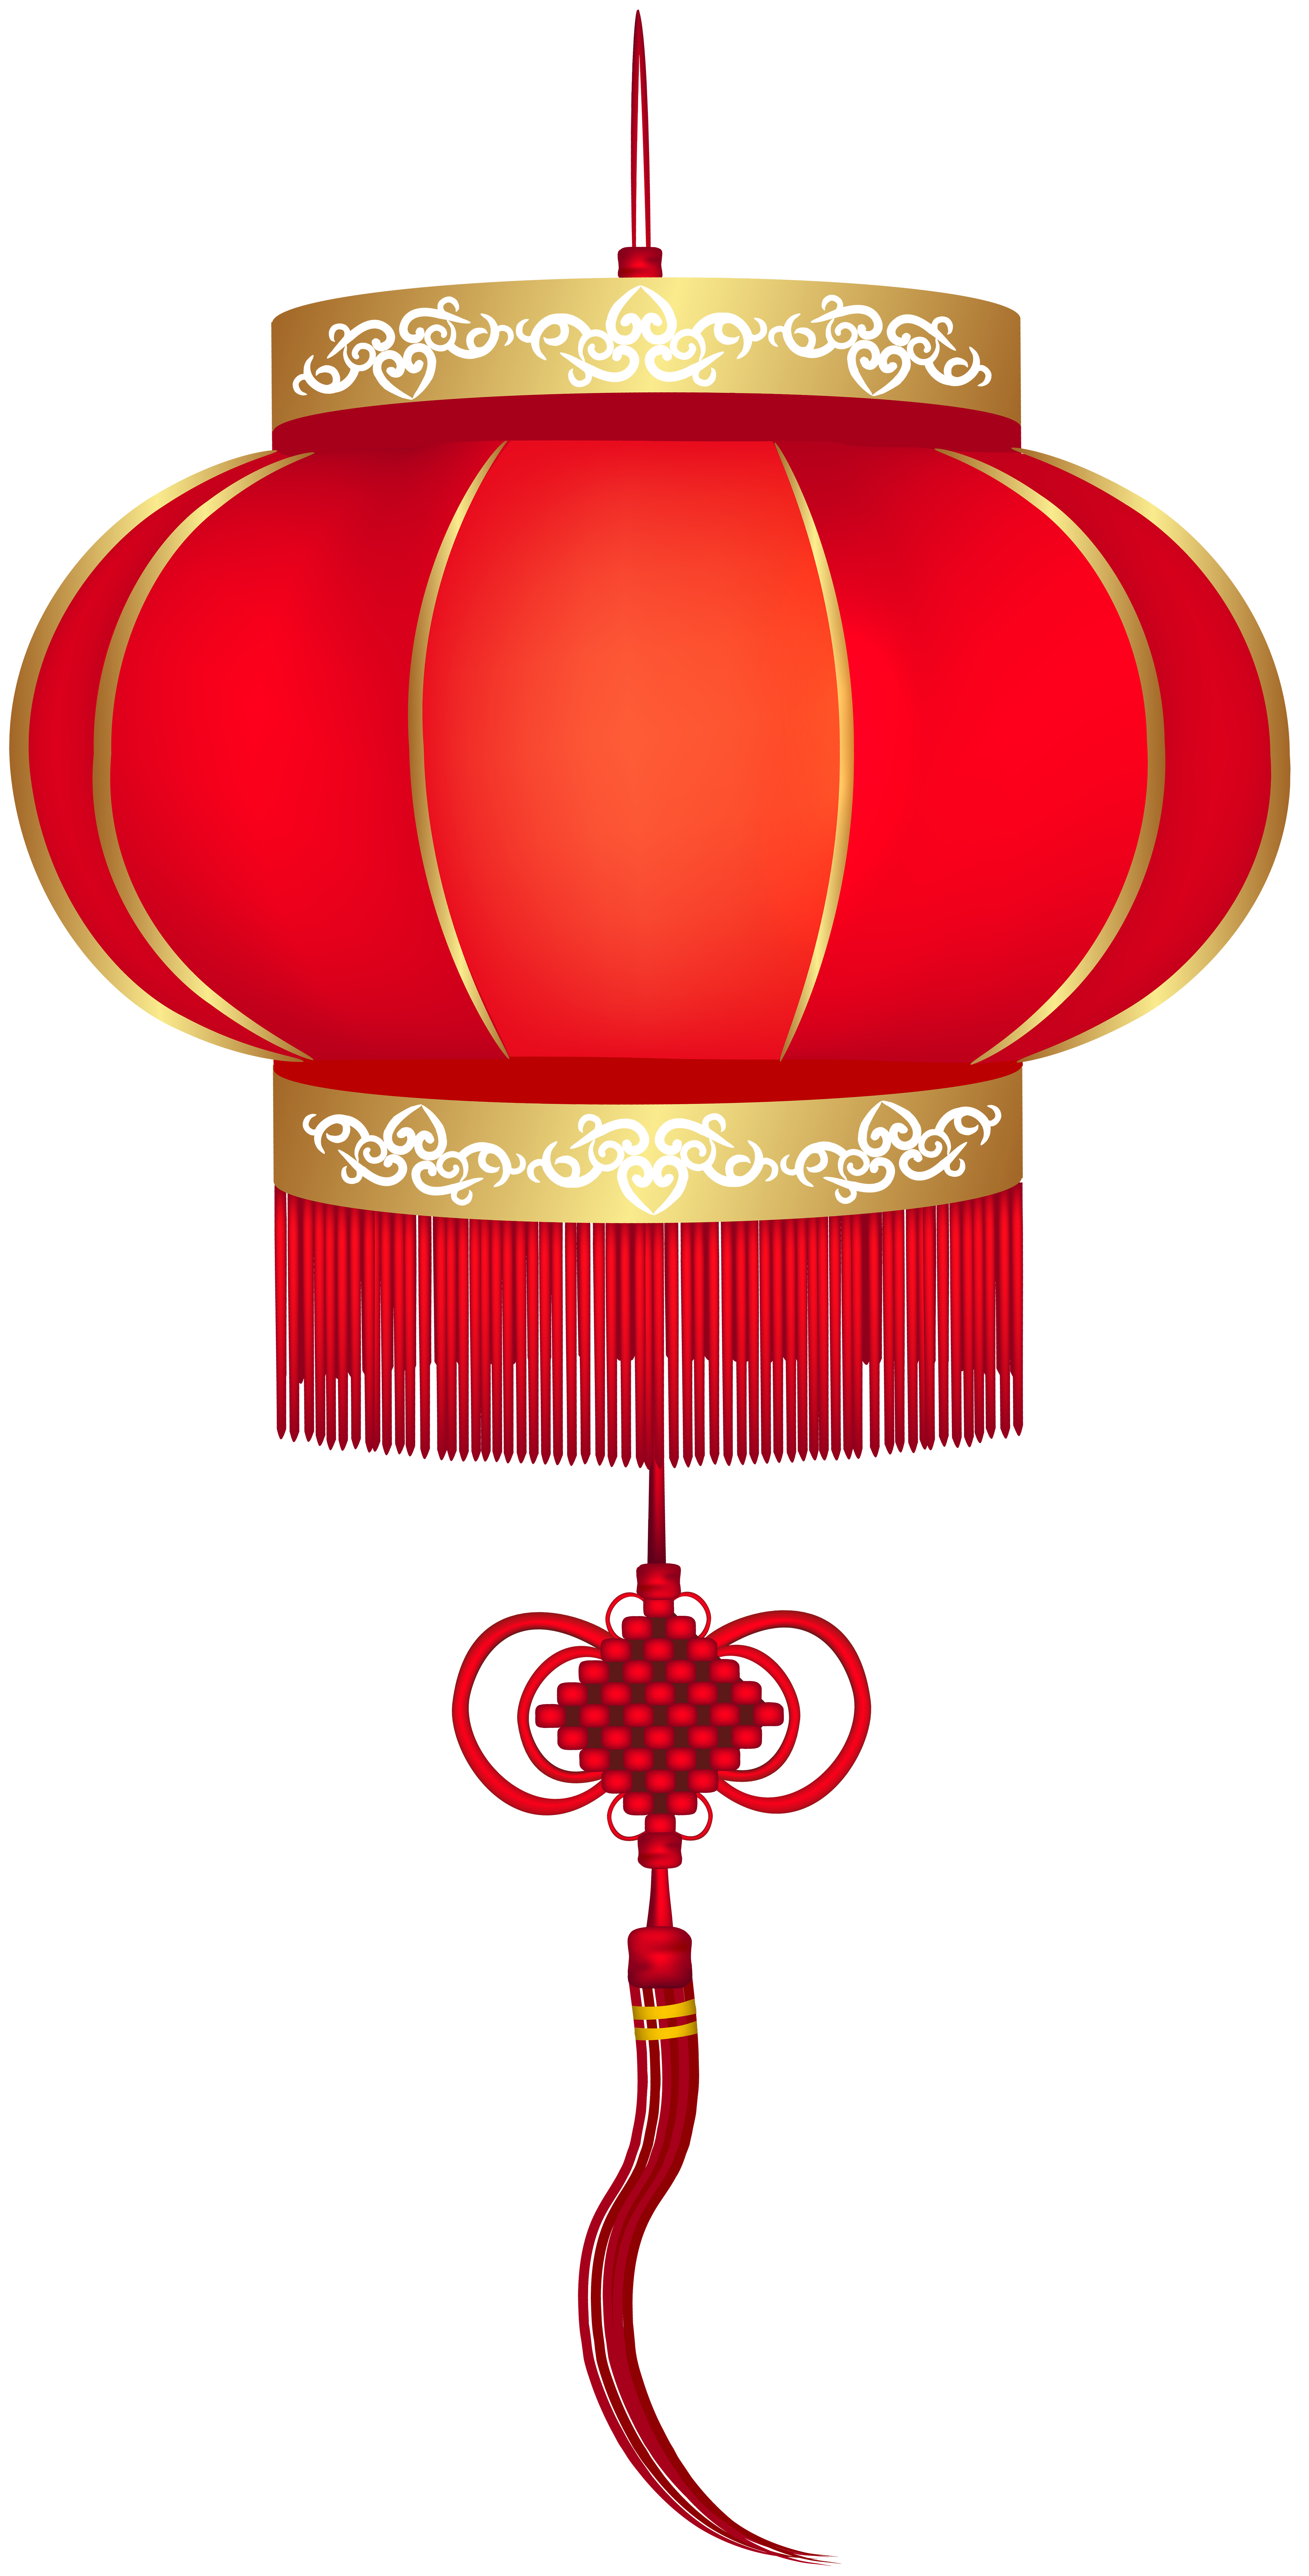 Palace clipart pagoda chinese. Red lantern png clip